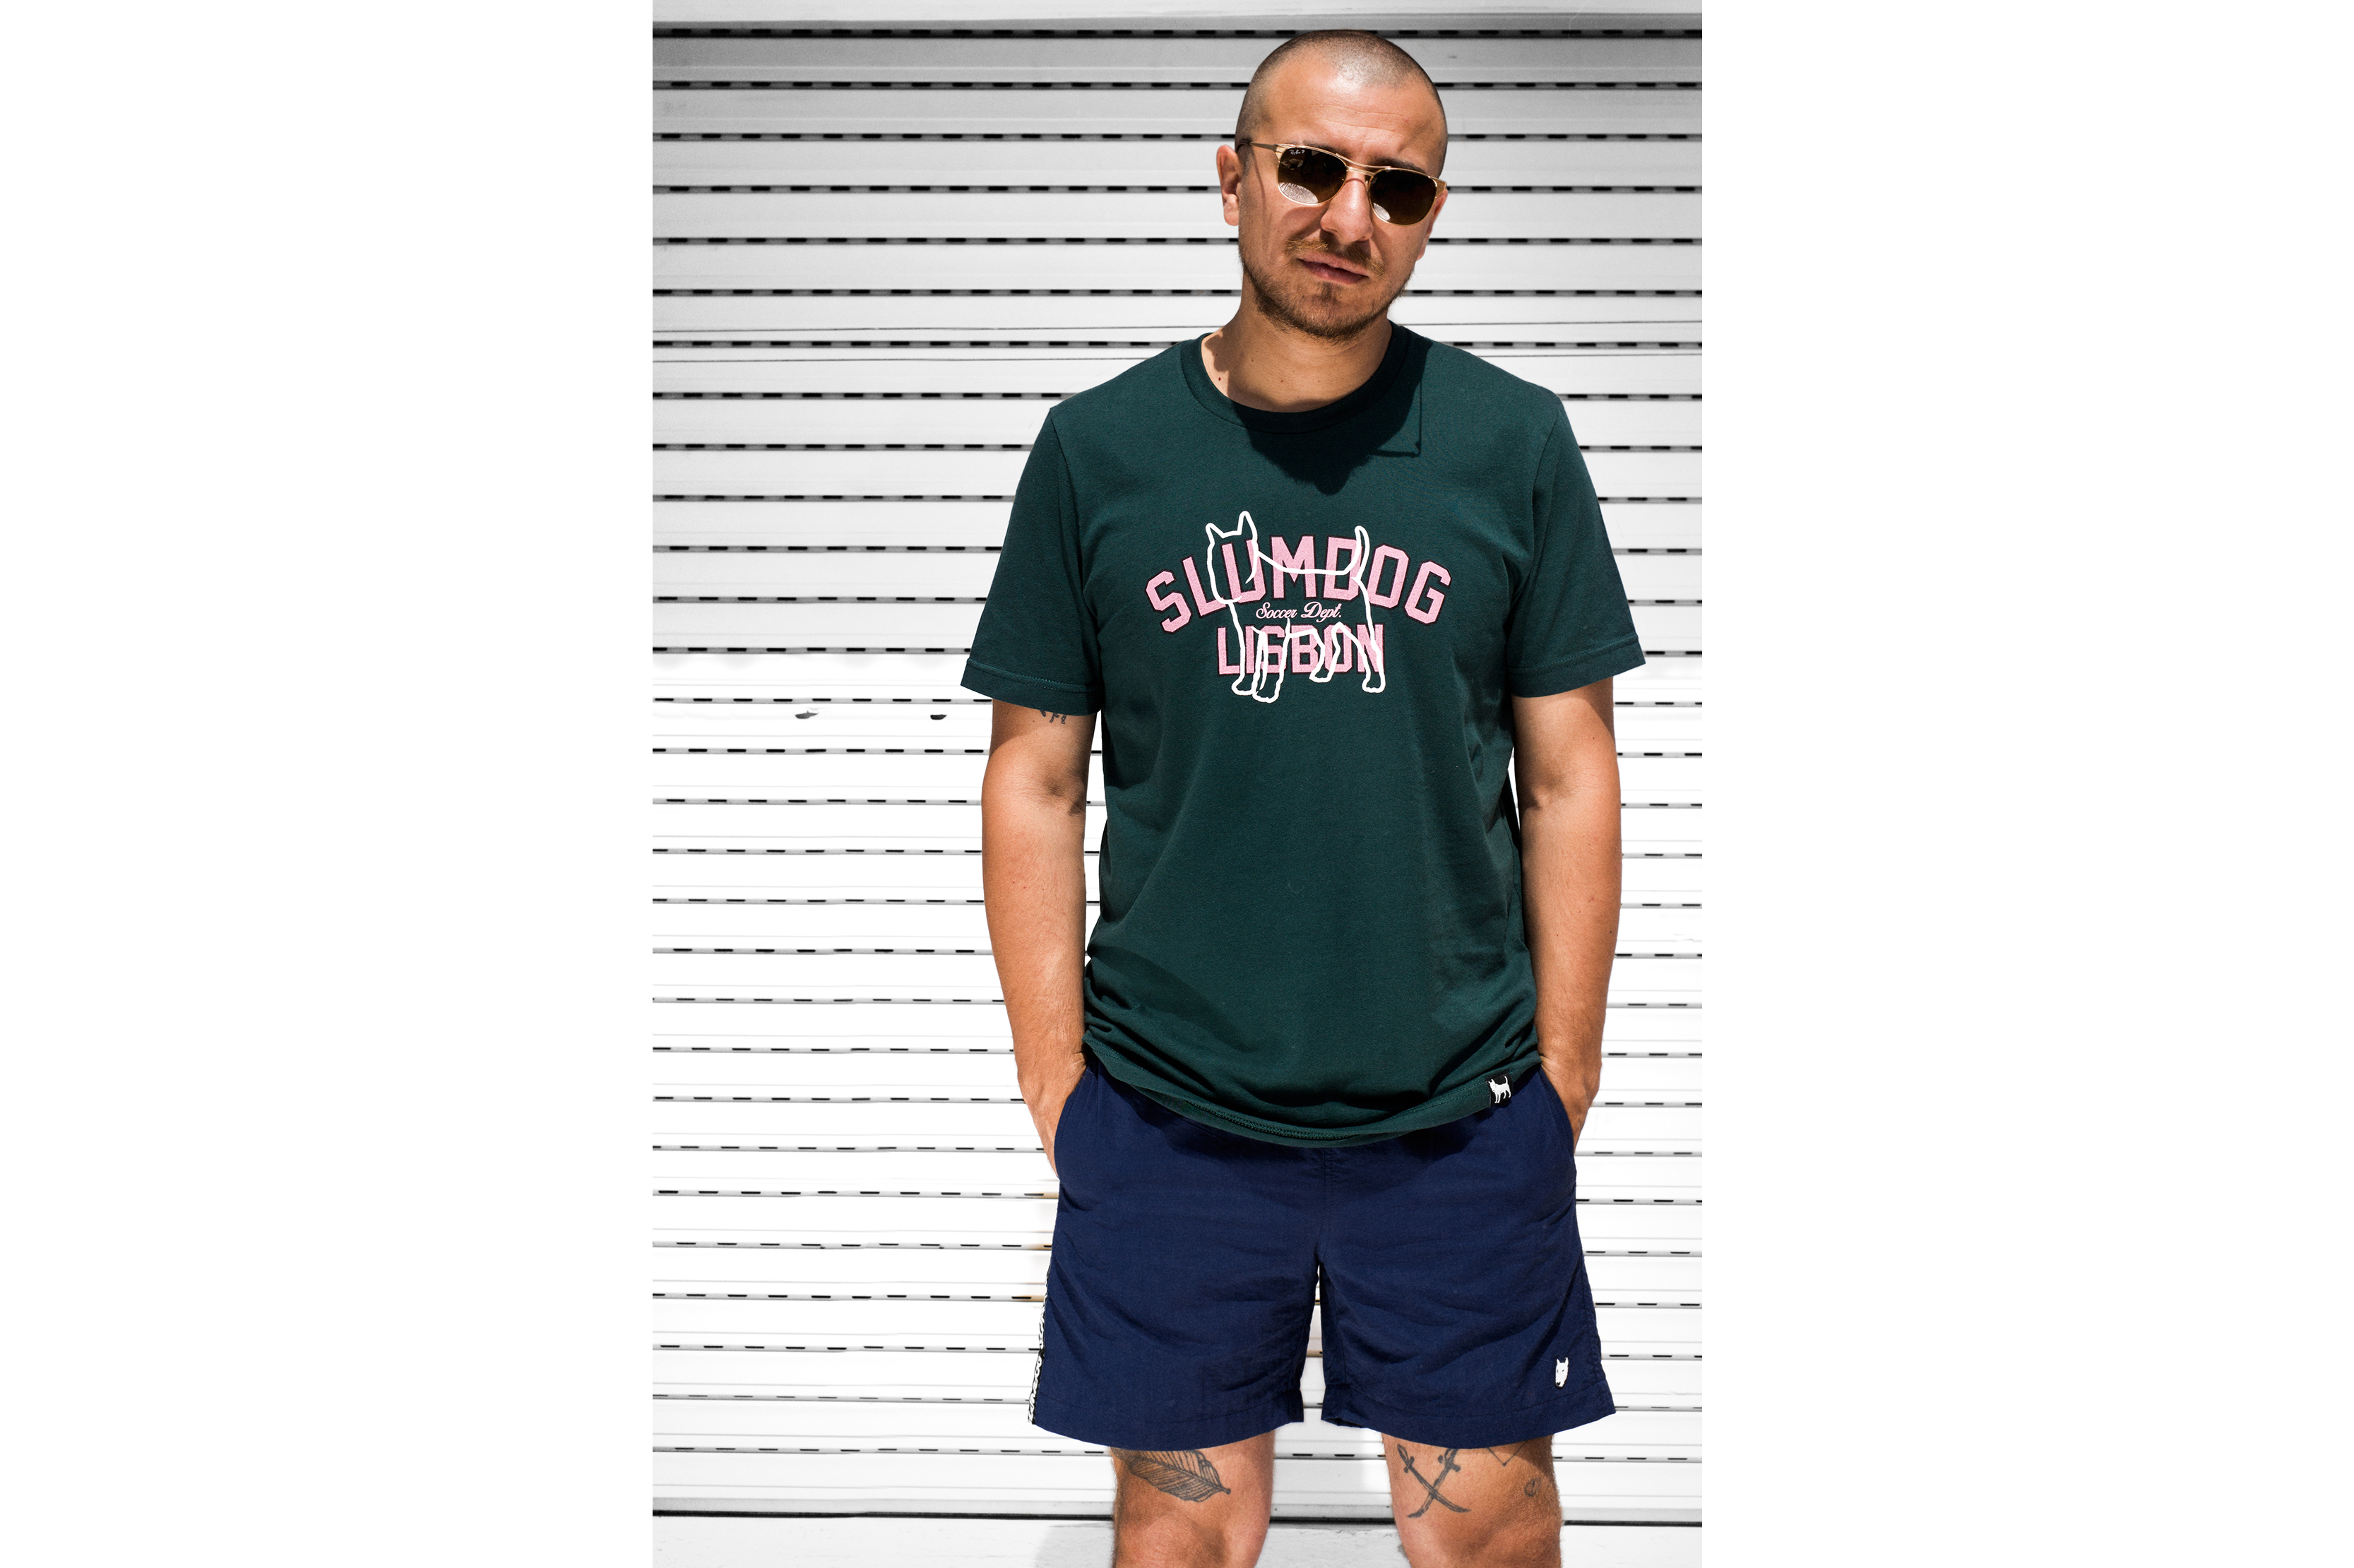 Slumdog Lookbook Image 8